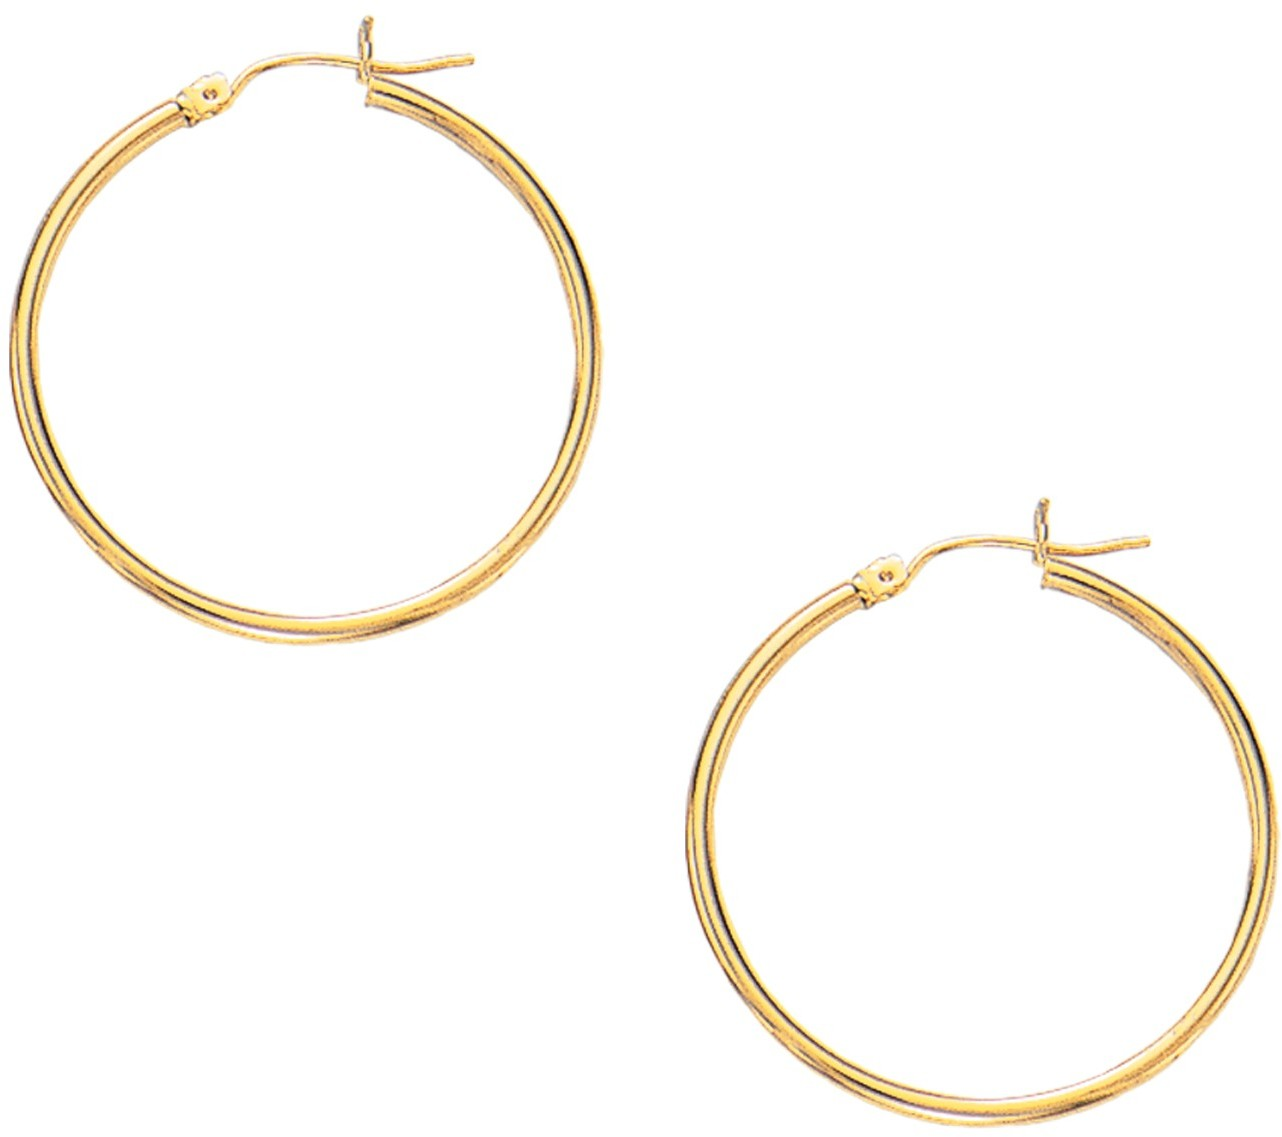 "10K Yellow Gold 2.0x30mm (0.08""x1.18"") Shiny Round Hoop Earrings"